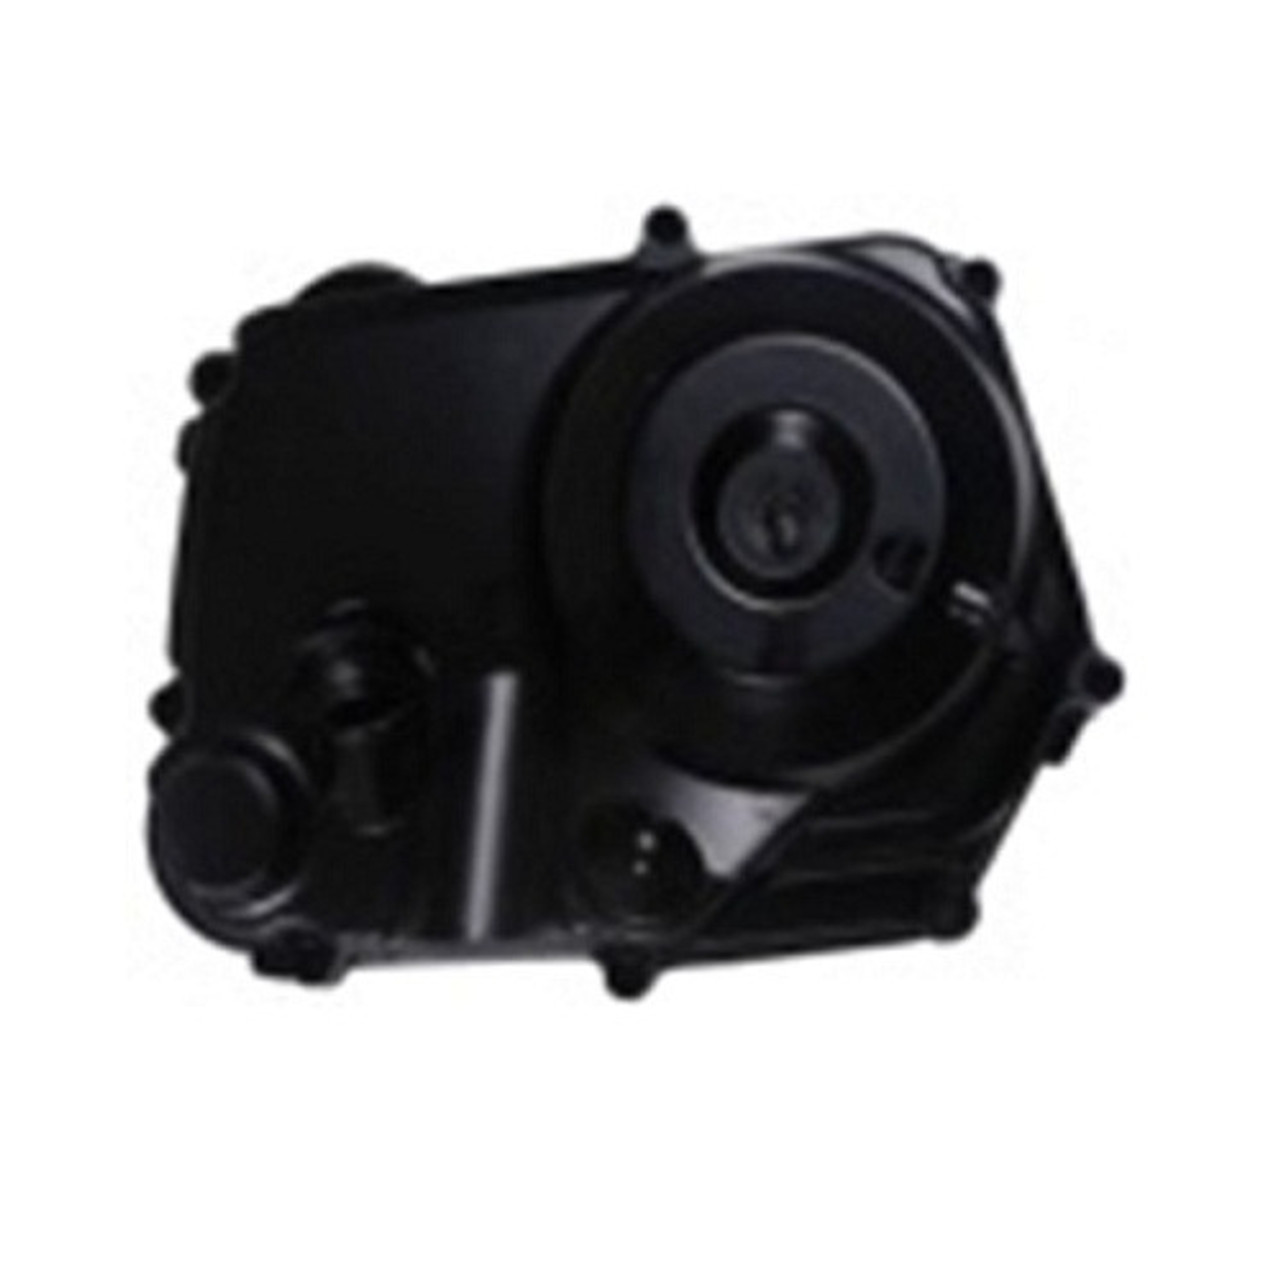 Right Engine Crankcase Cover Black for ATA 110 B/B1 104344